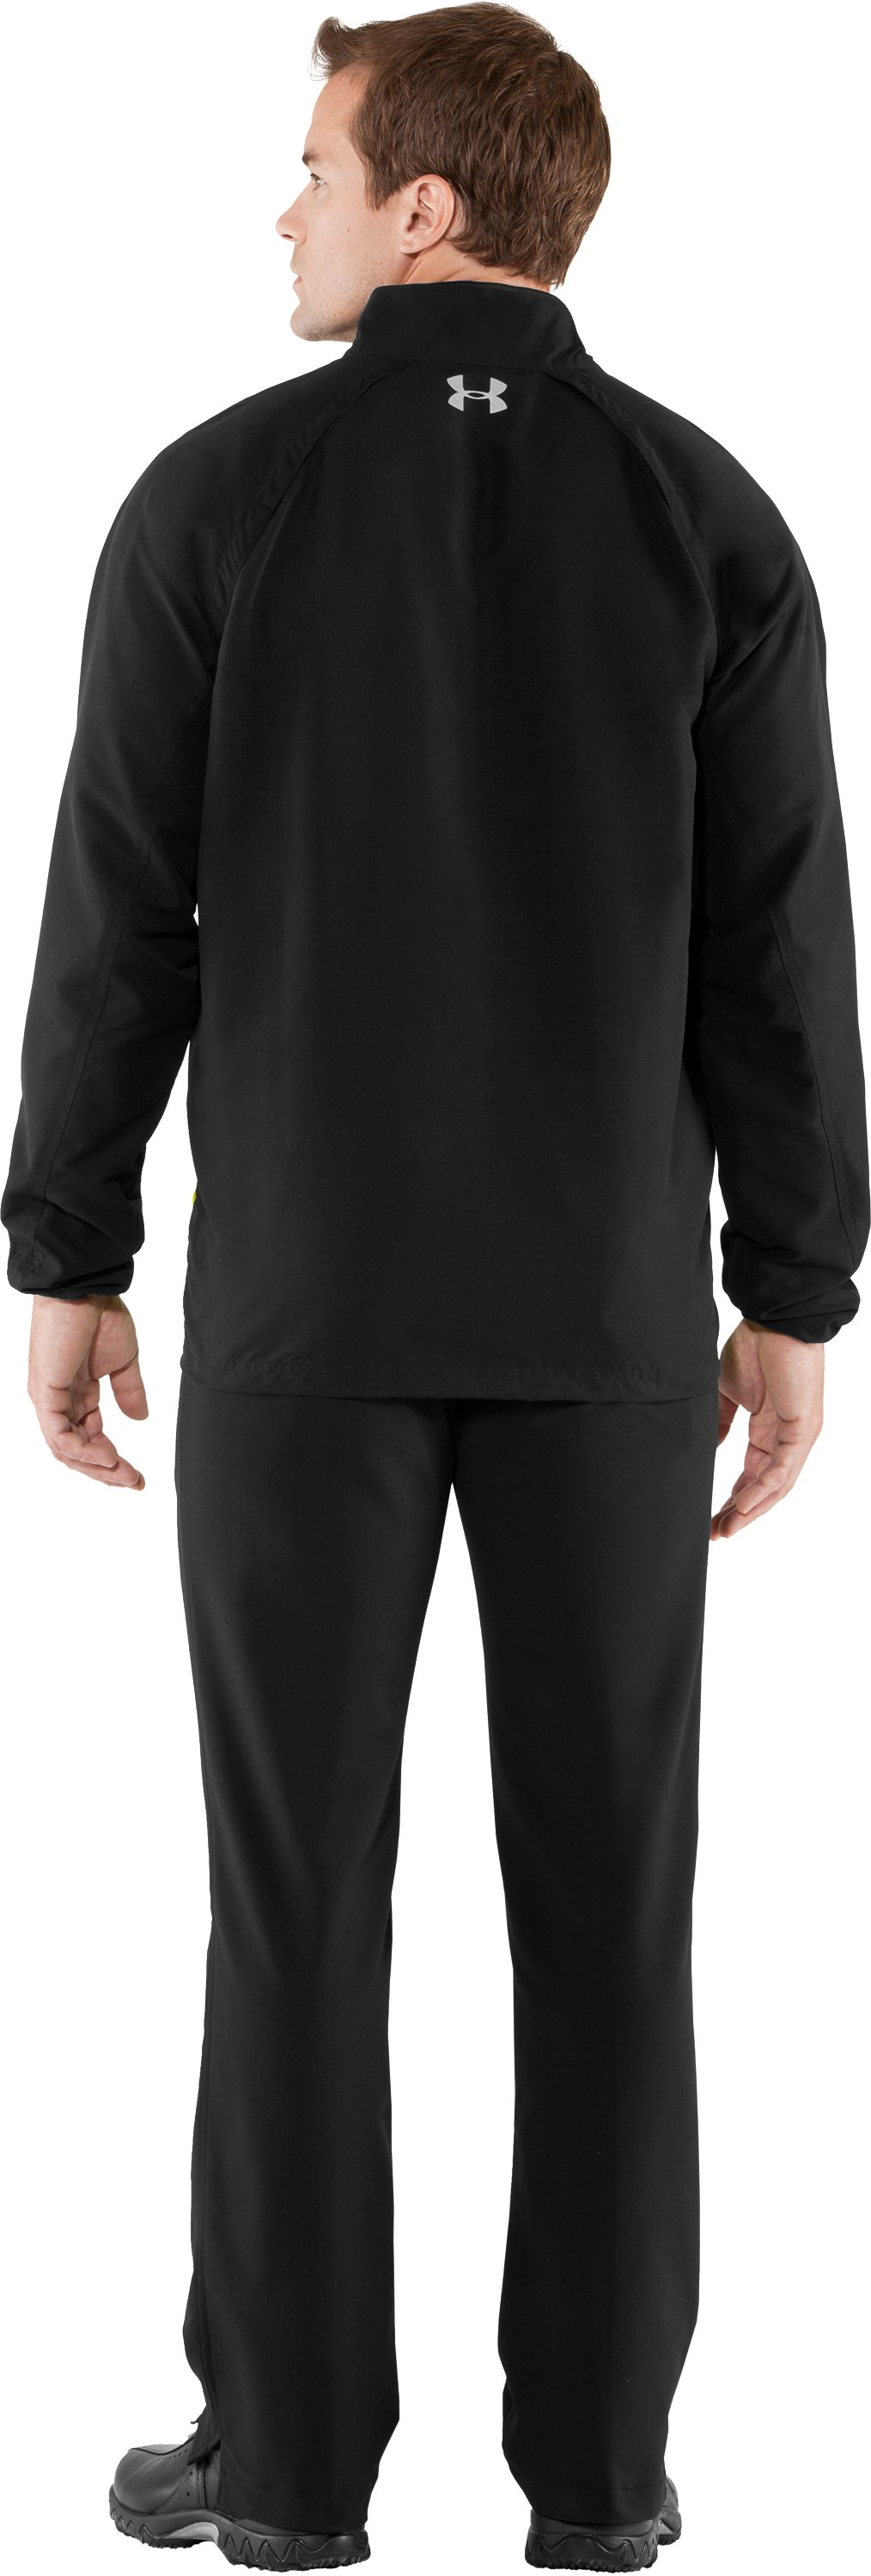 Men's UA Windstorm Long Sleeve Windshirt, Black , Back